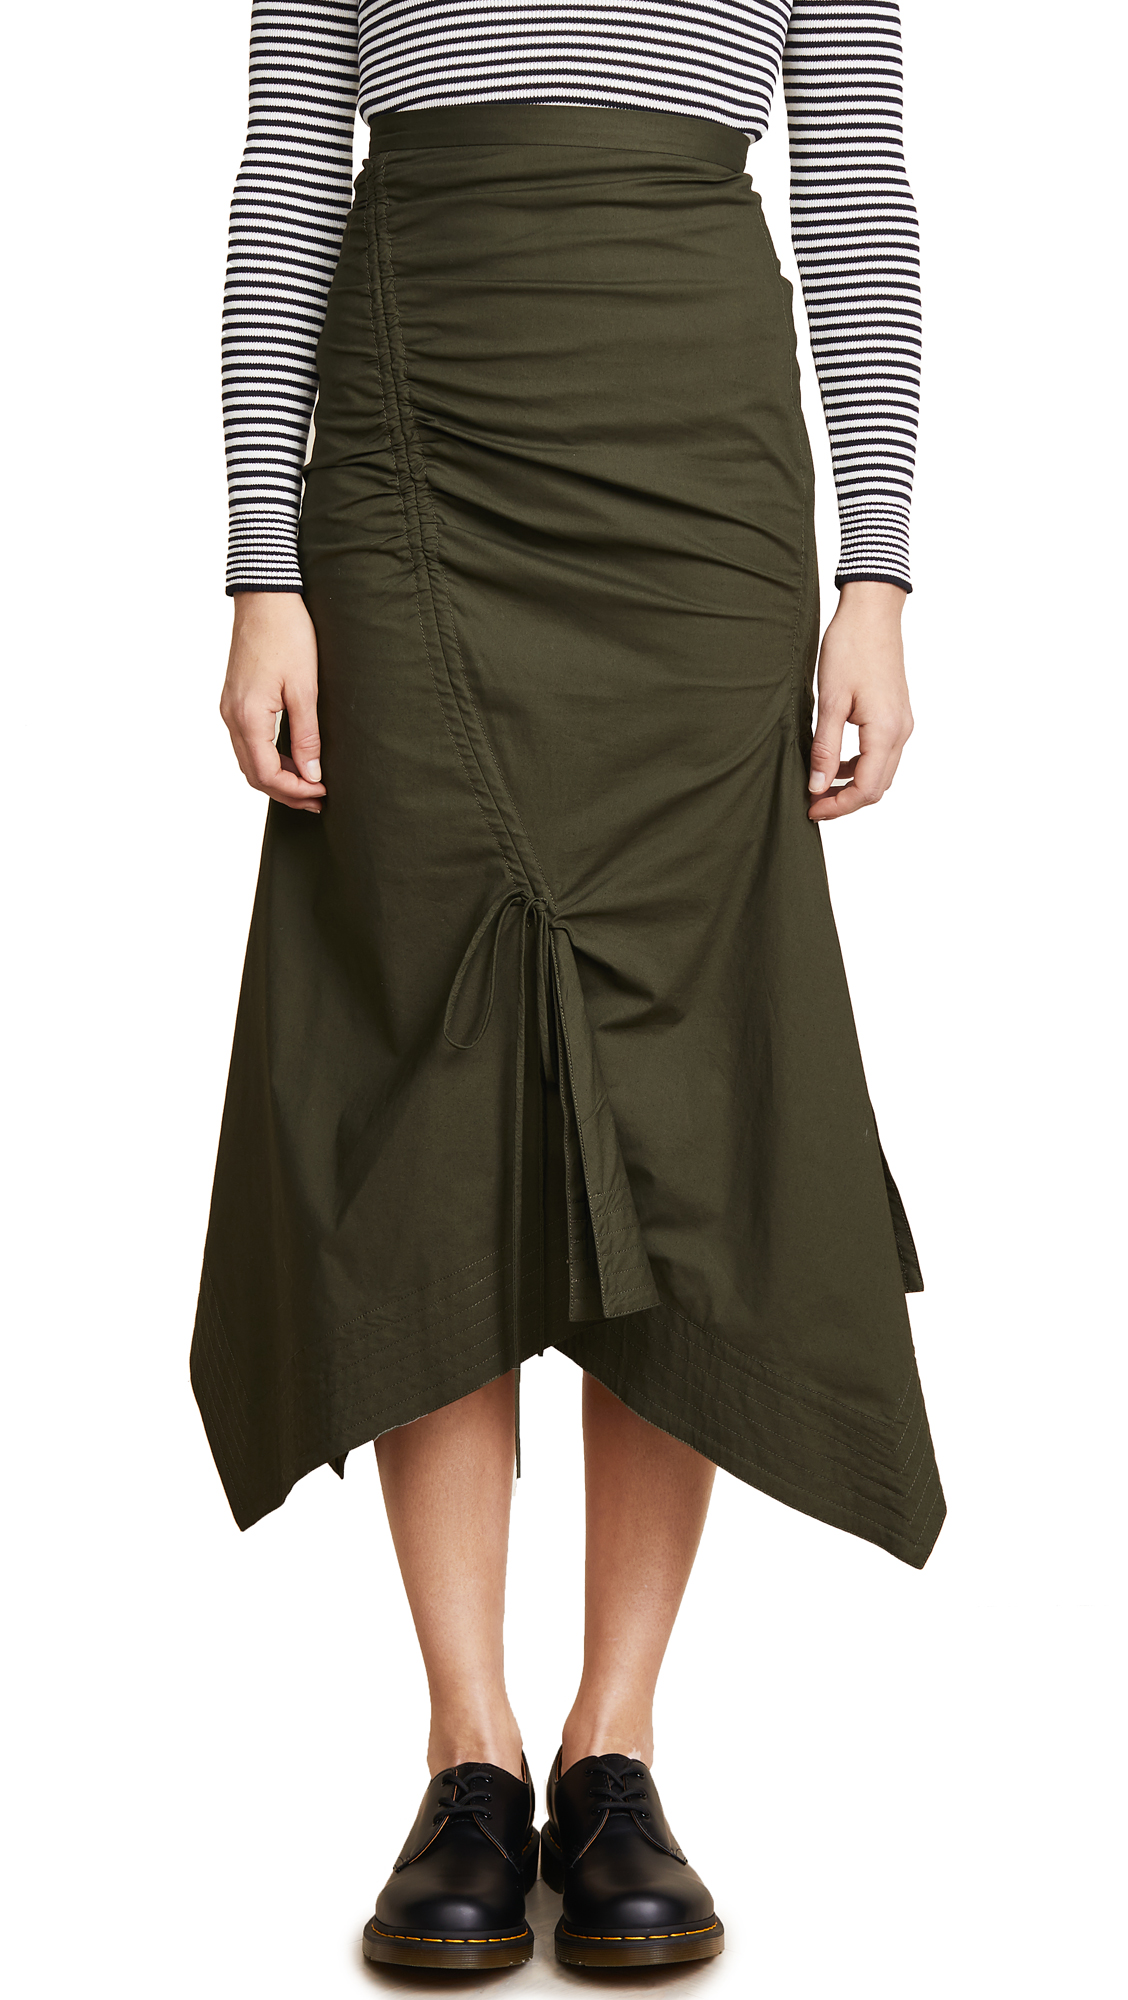 Tanya Taylor Raquel Skirt In Army